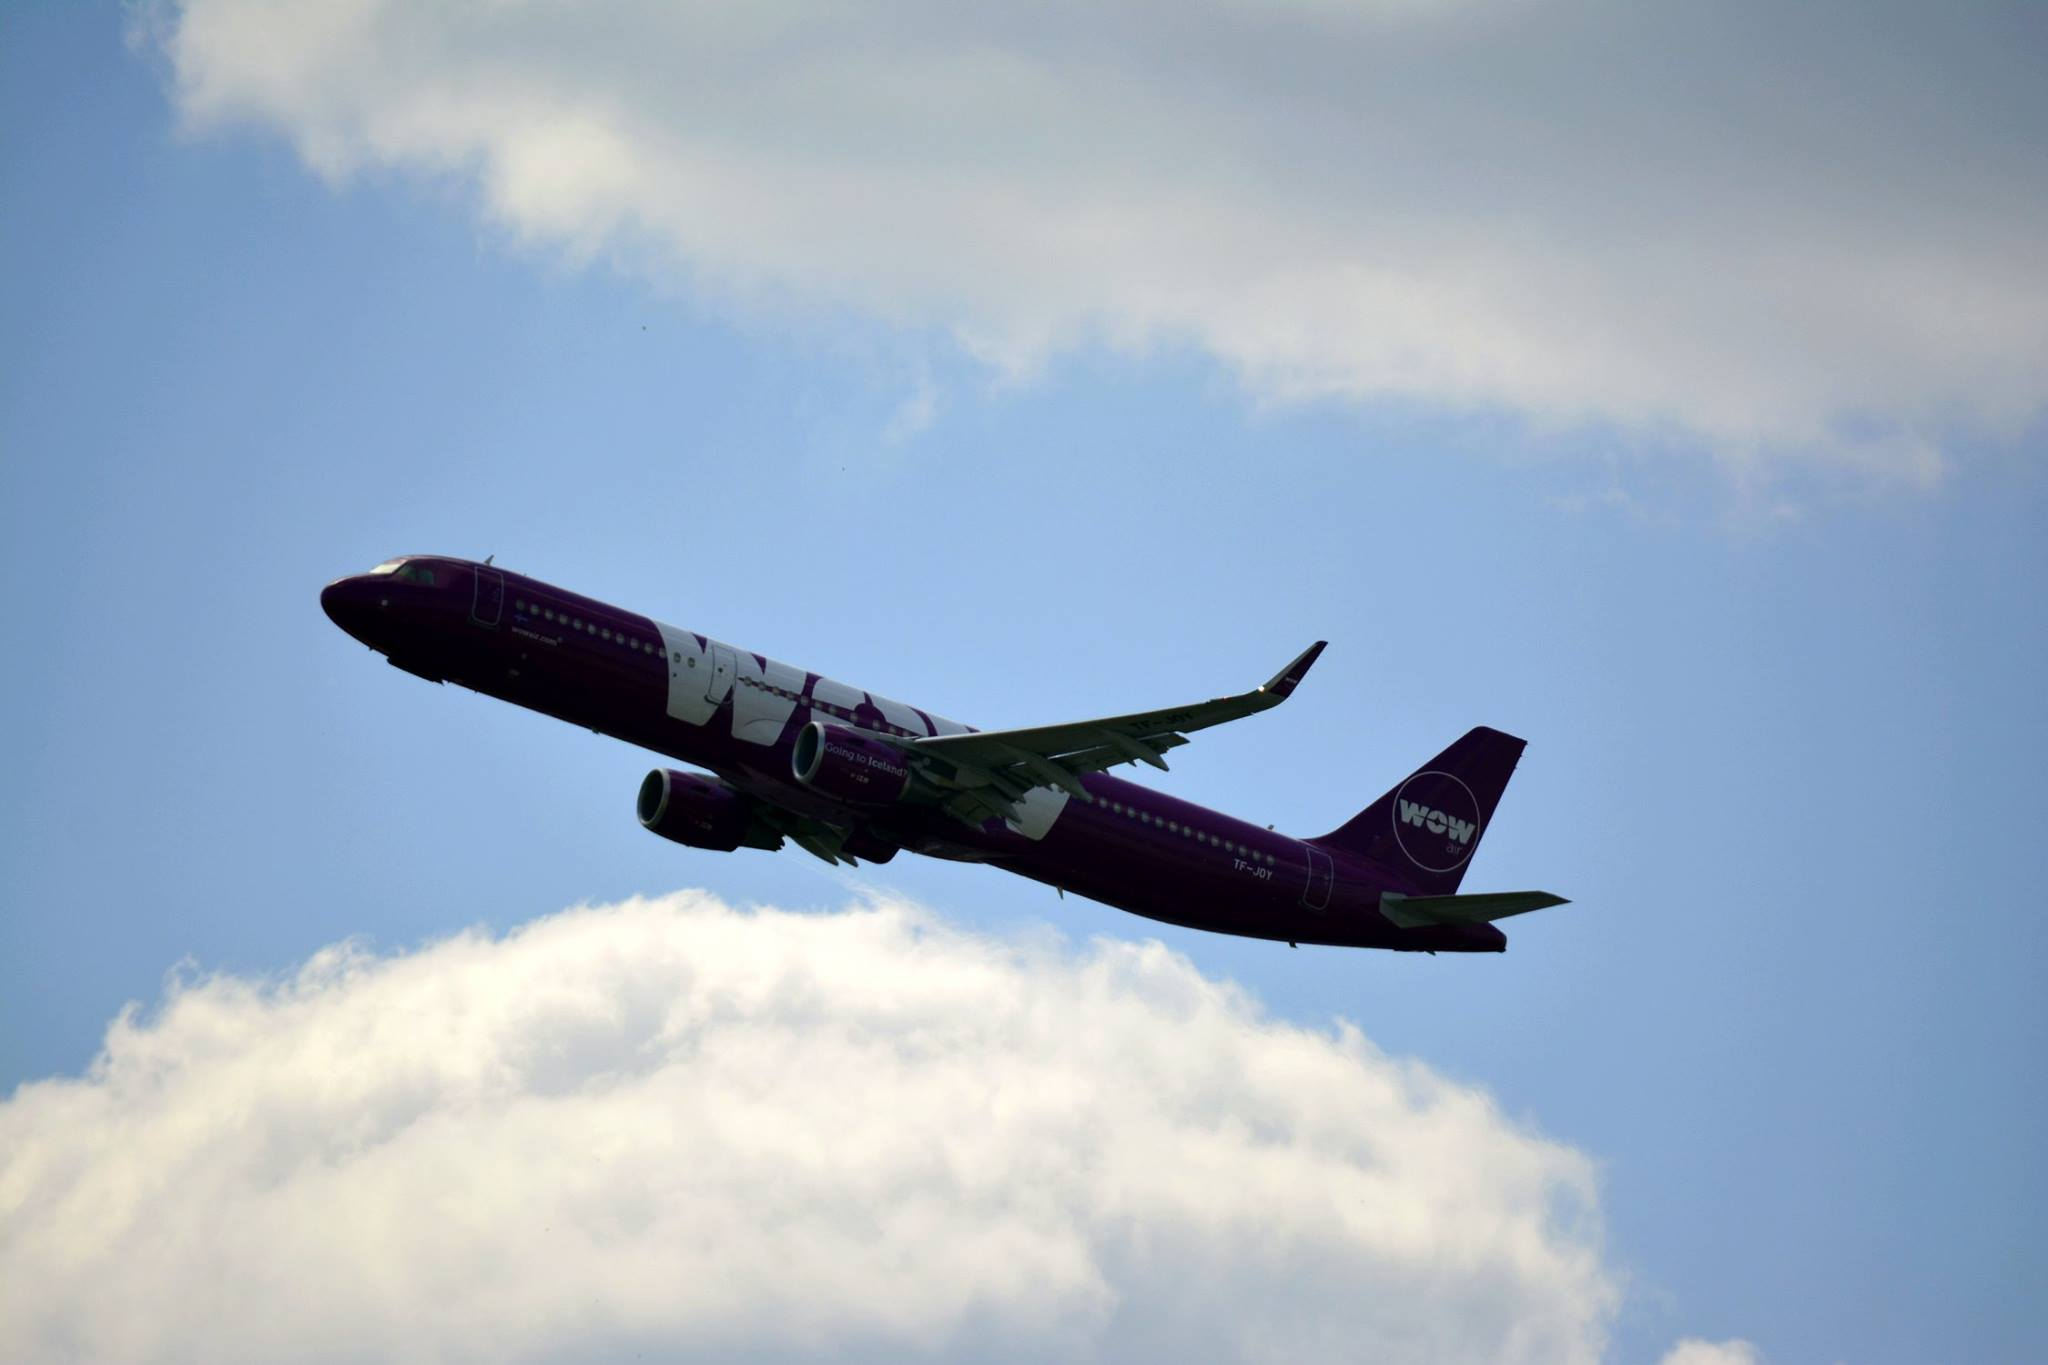 Departure of WOW air Airbus A321 from Sheremetyevo, Moscow during World Cup 2018 on 17.06.18 // Source: Dmitry Dulin